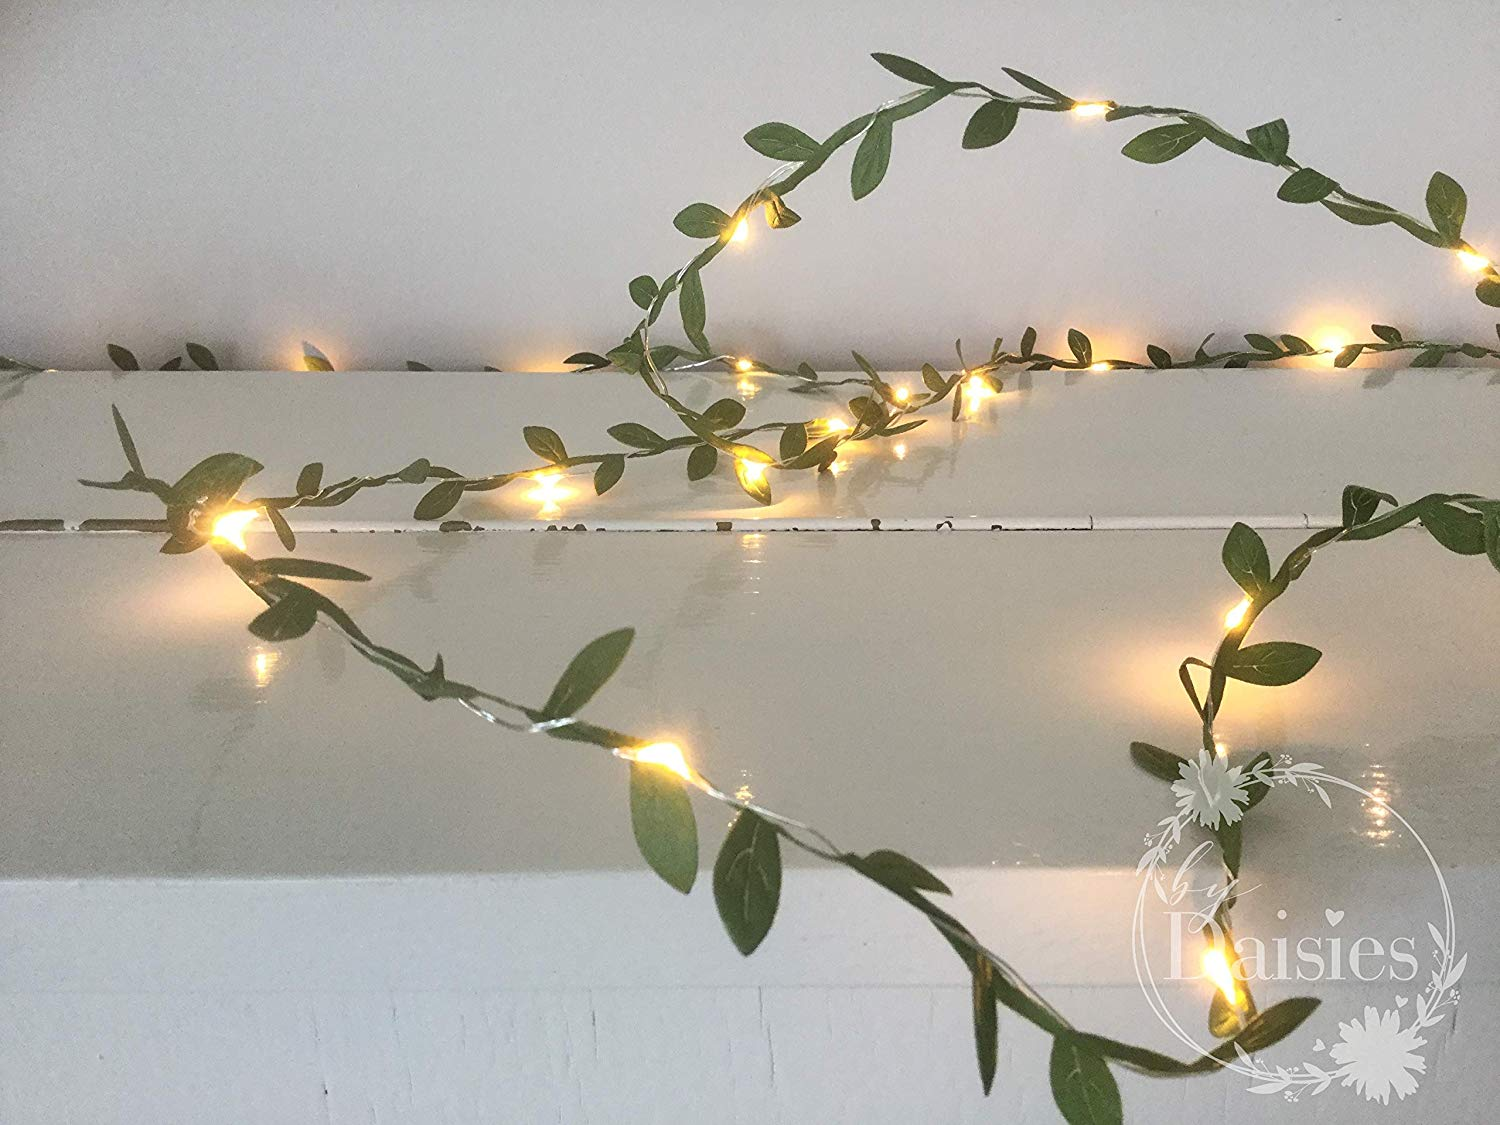 Green leaves fairy lights 2m-10m 20-100 LED - string lights garland - AA Battery Powered - Wedding Decorations - spring decorations - Warm White - Leaf Fairy Lights - Green Leaf Garland